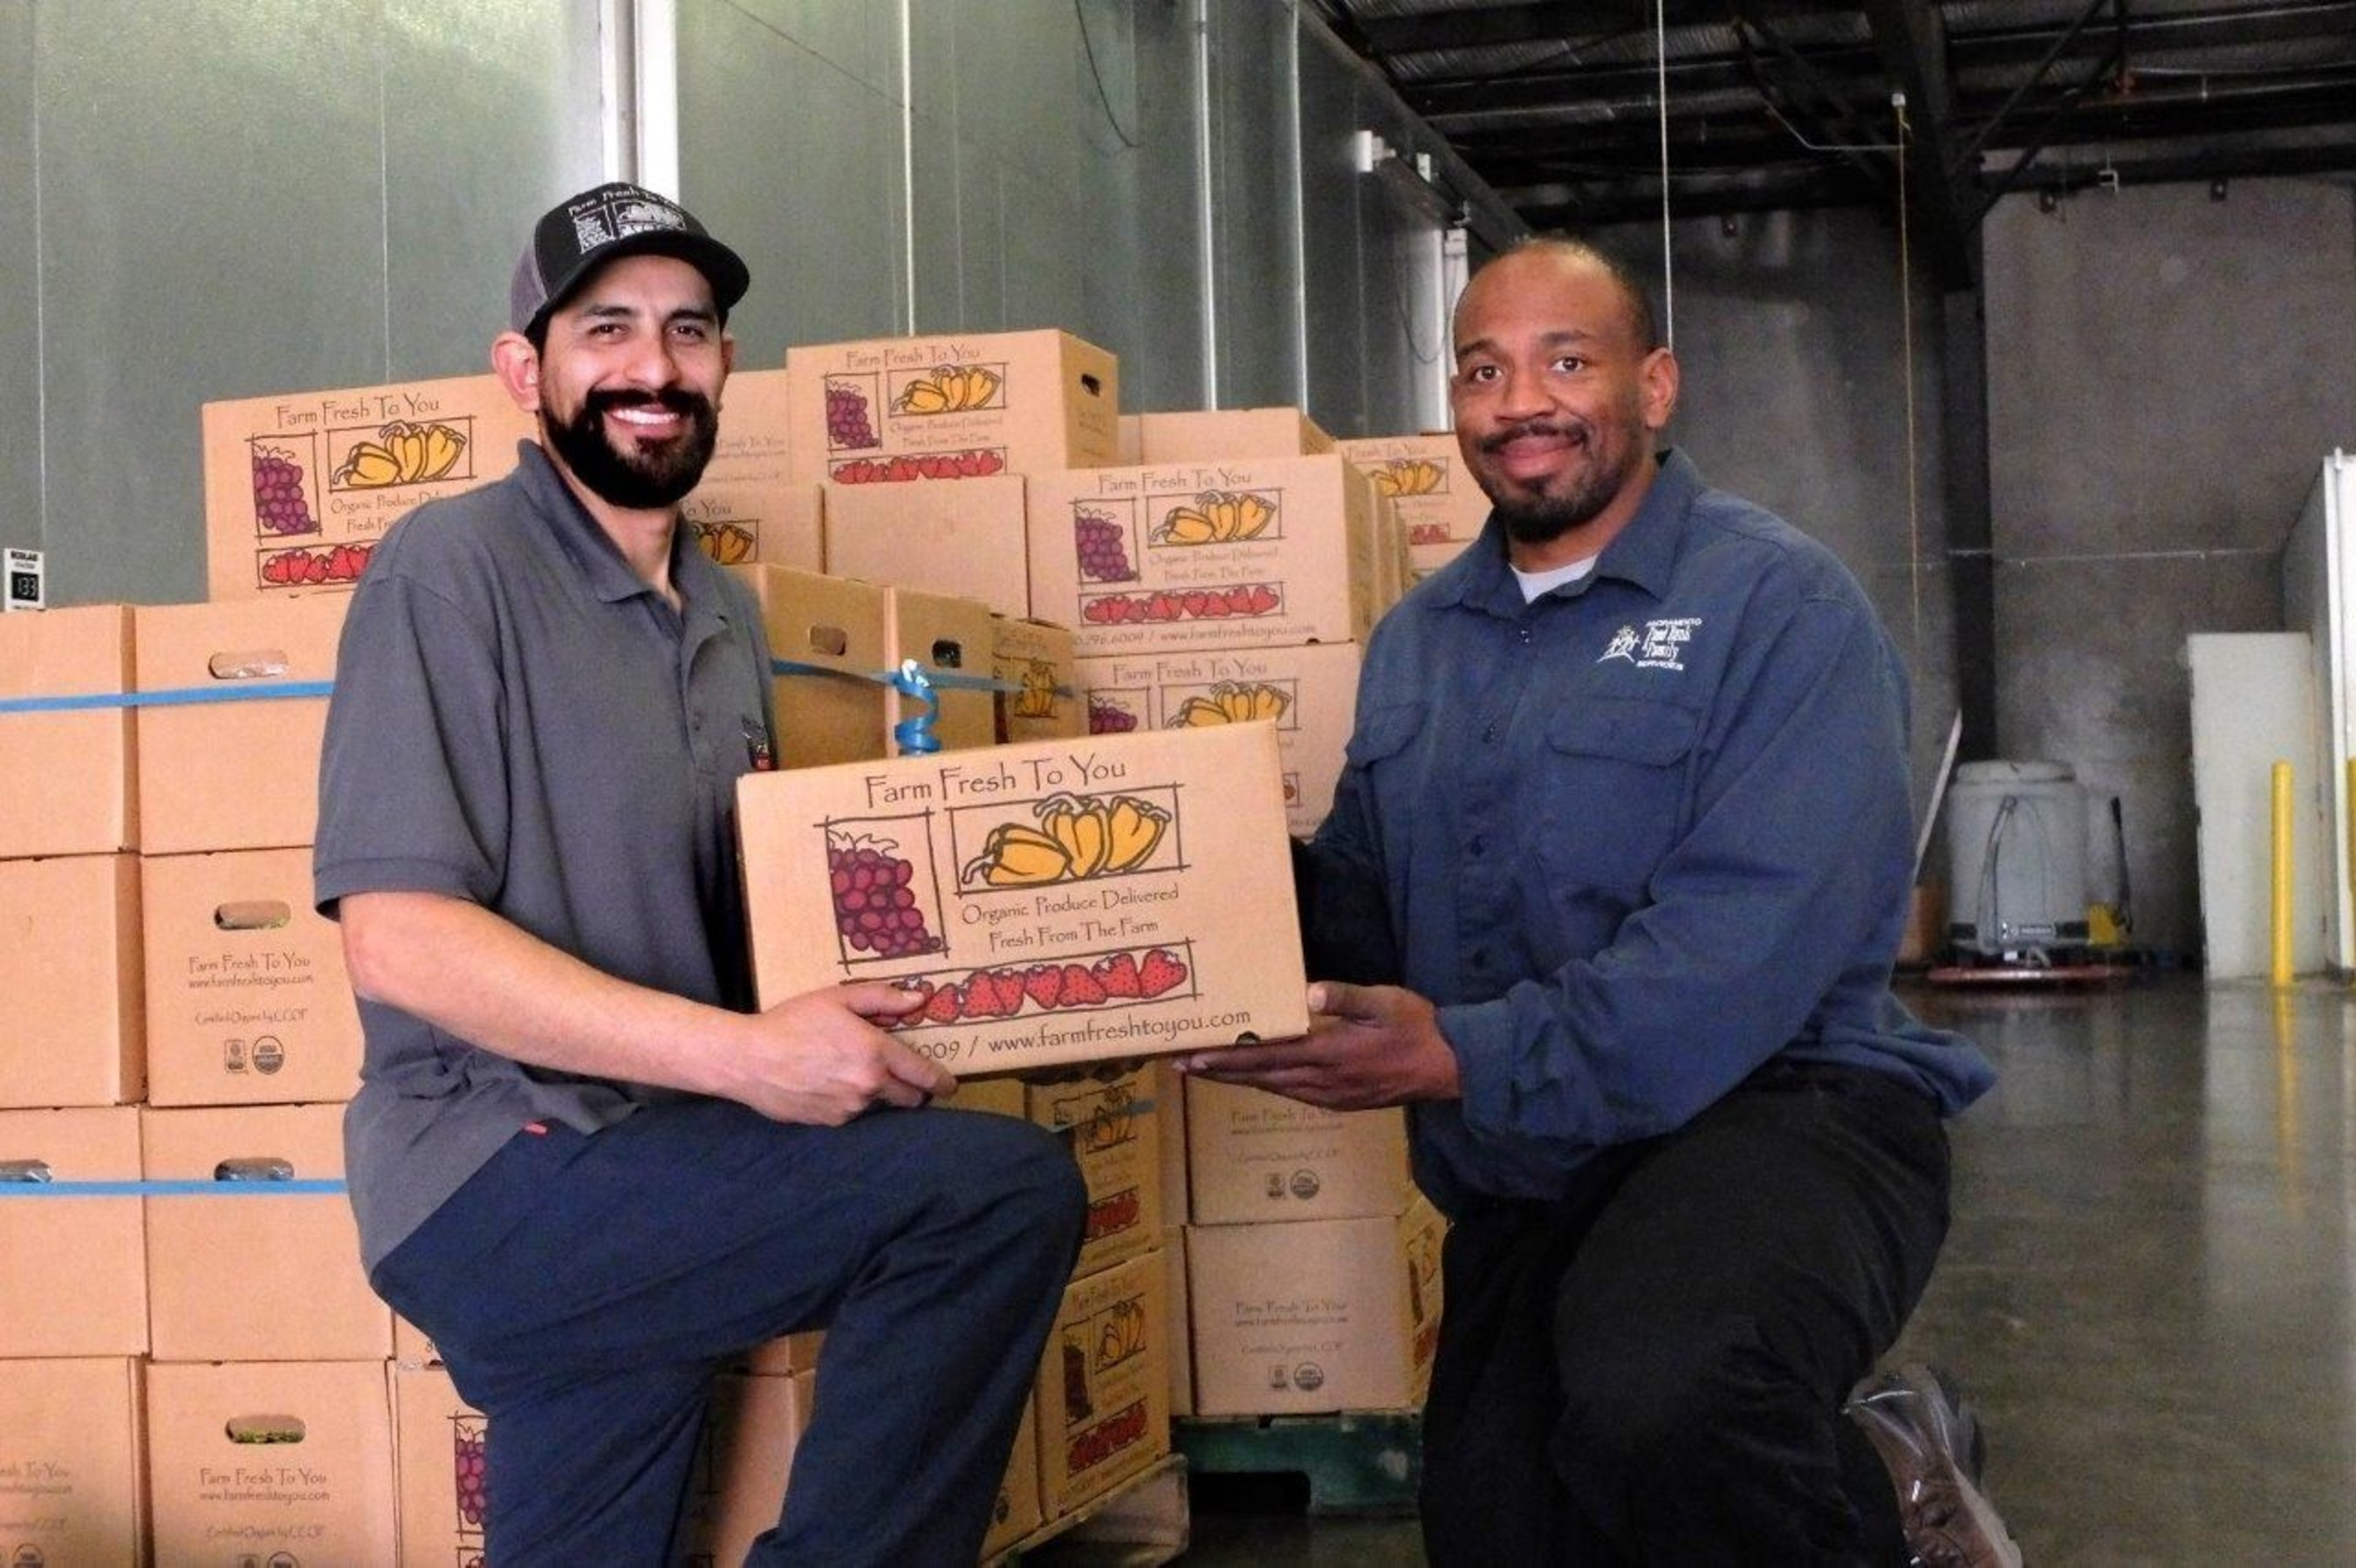 Farm Fresh To You's Donate-A-Box program has donated over 22,000 produced boxes to food banks.